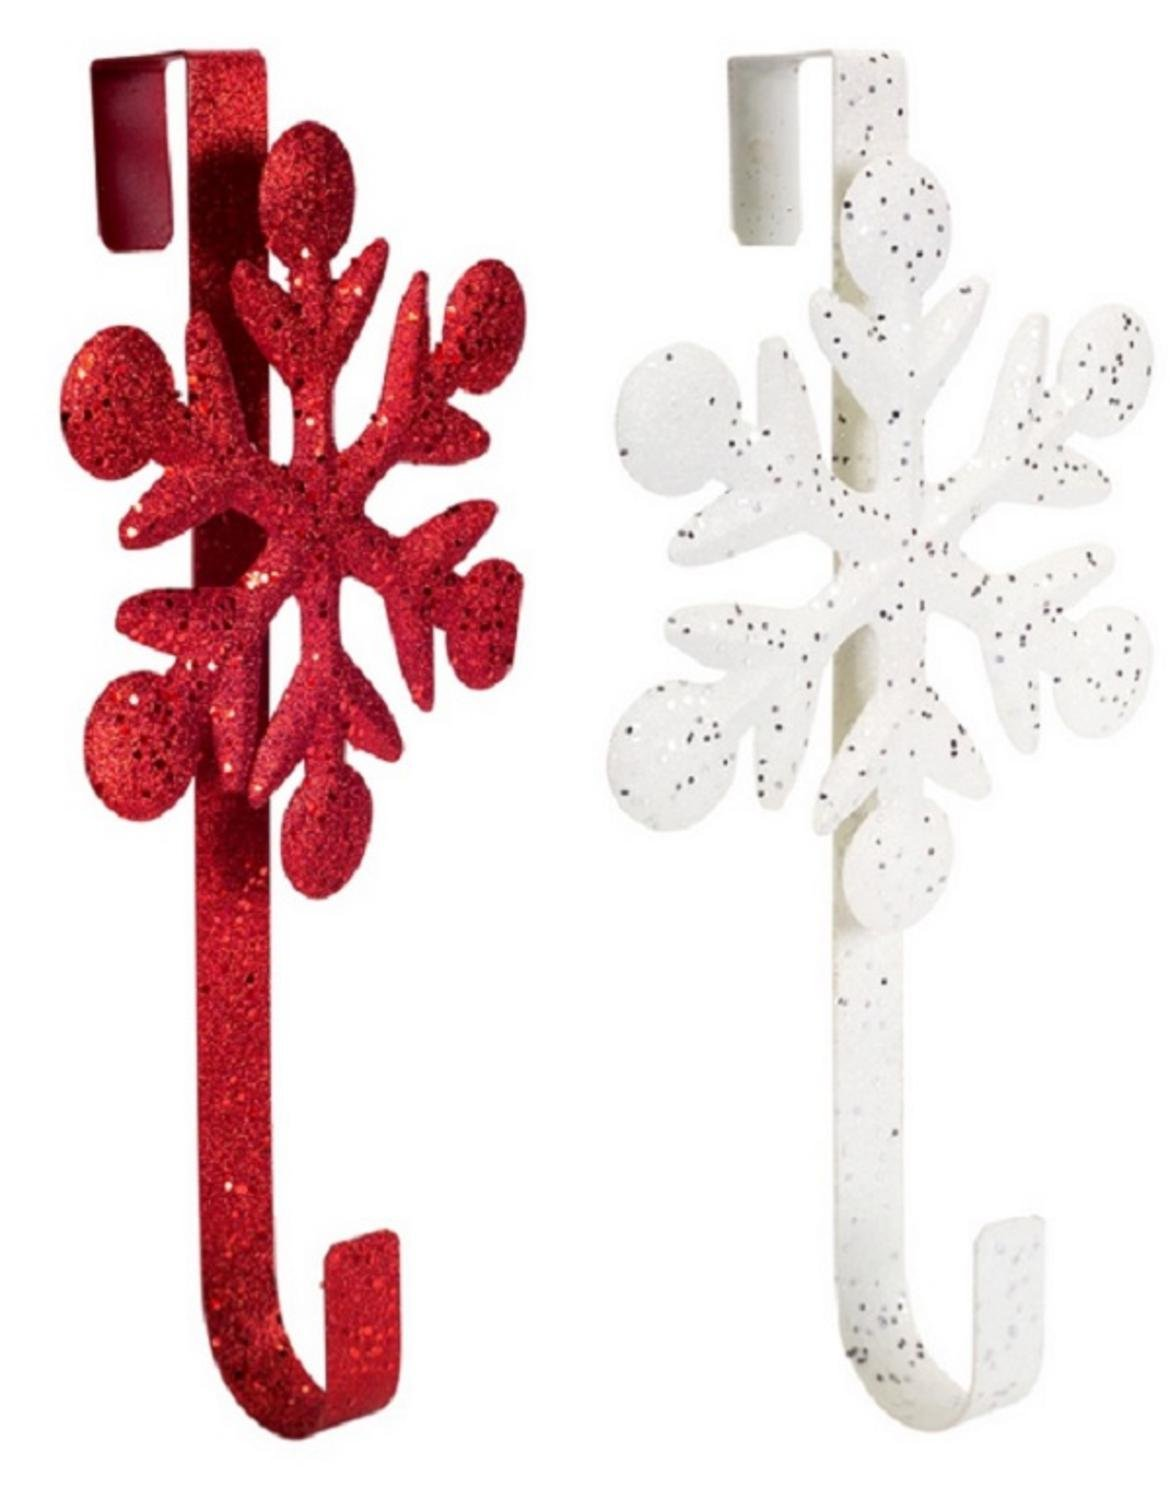 Club Pack of 12 Decorative Red and White Snowflake Christmas Wreath Door Hangers 18'' by Melrose